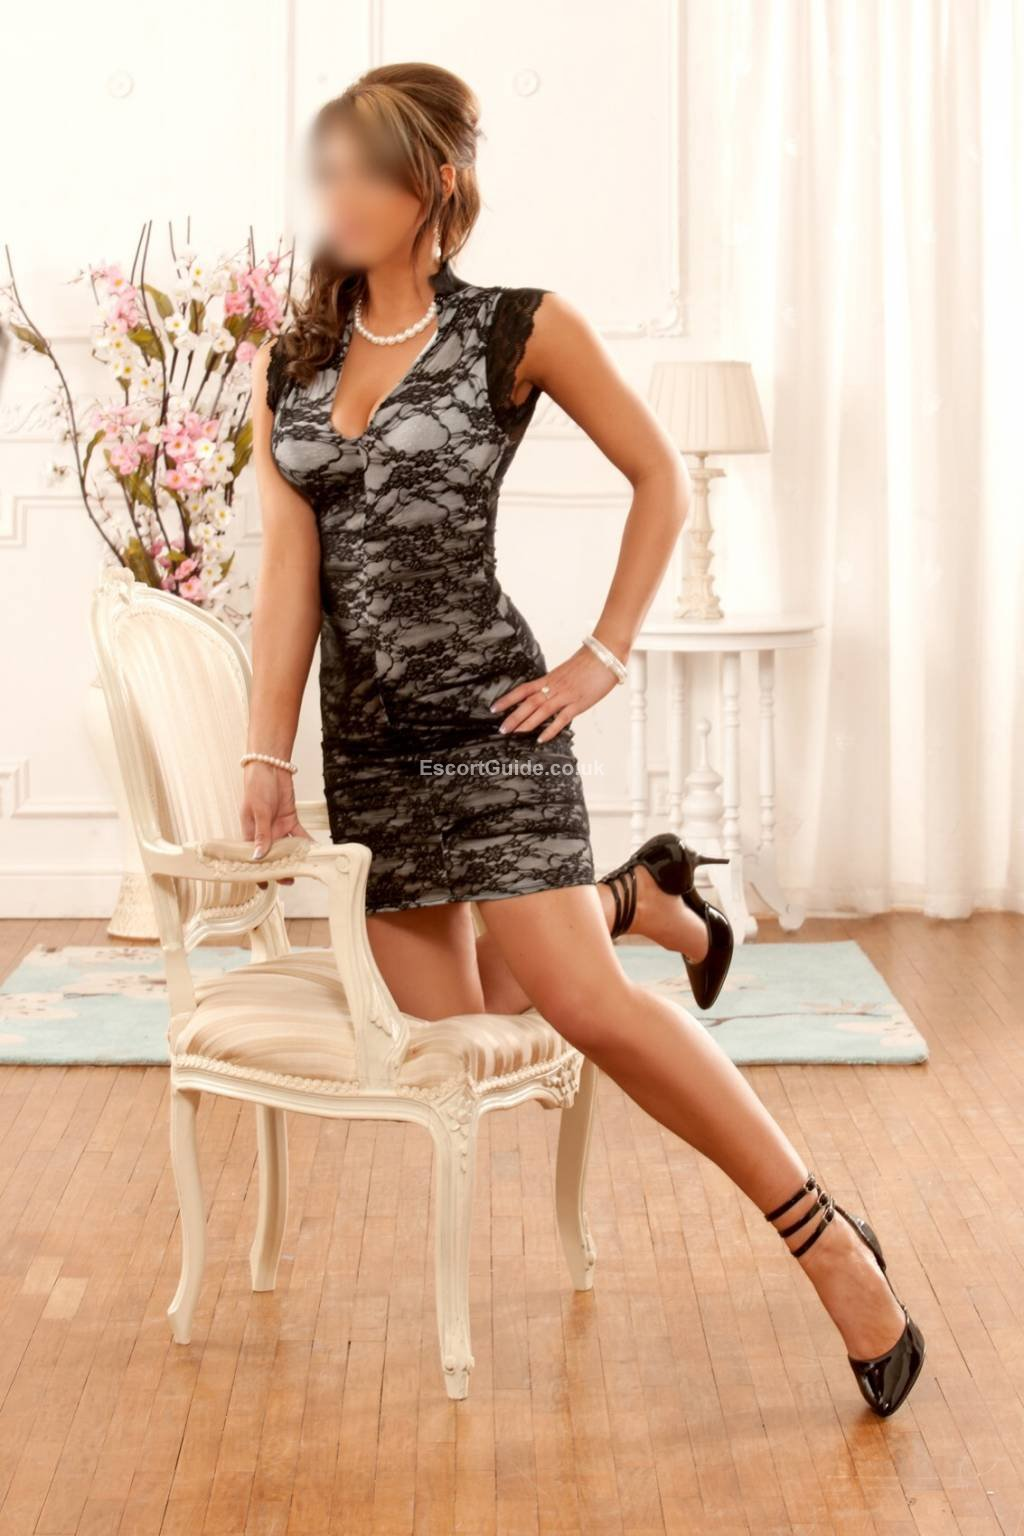 man vip escorts northampton